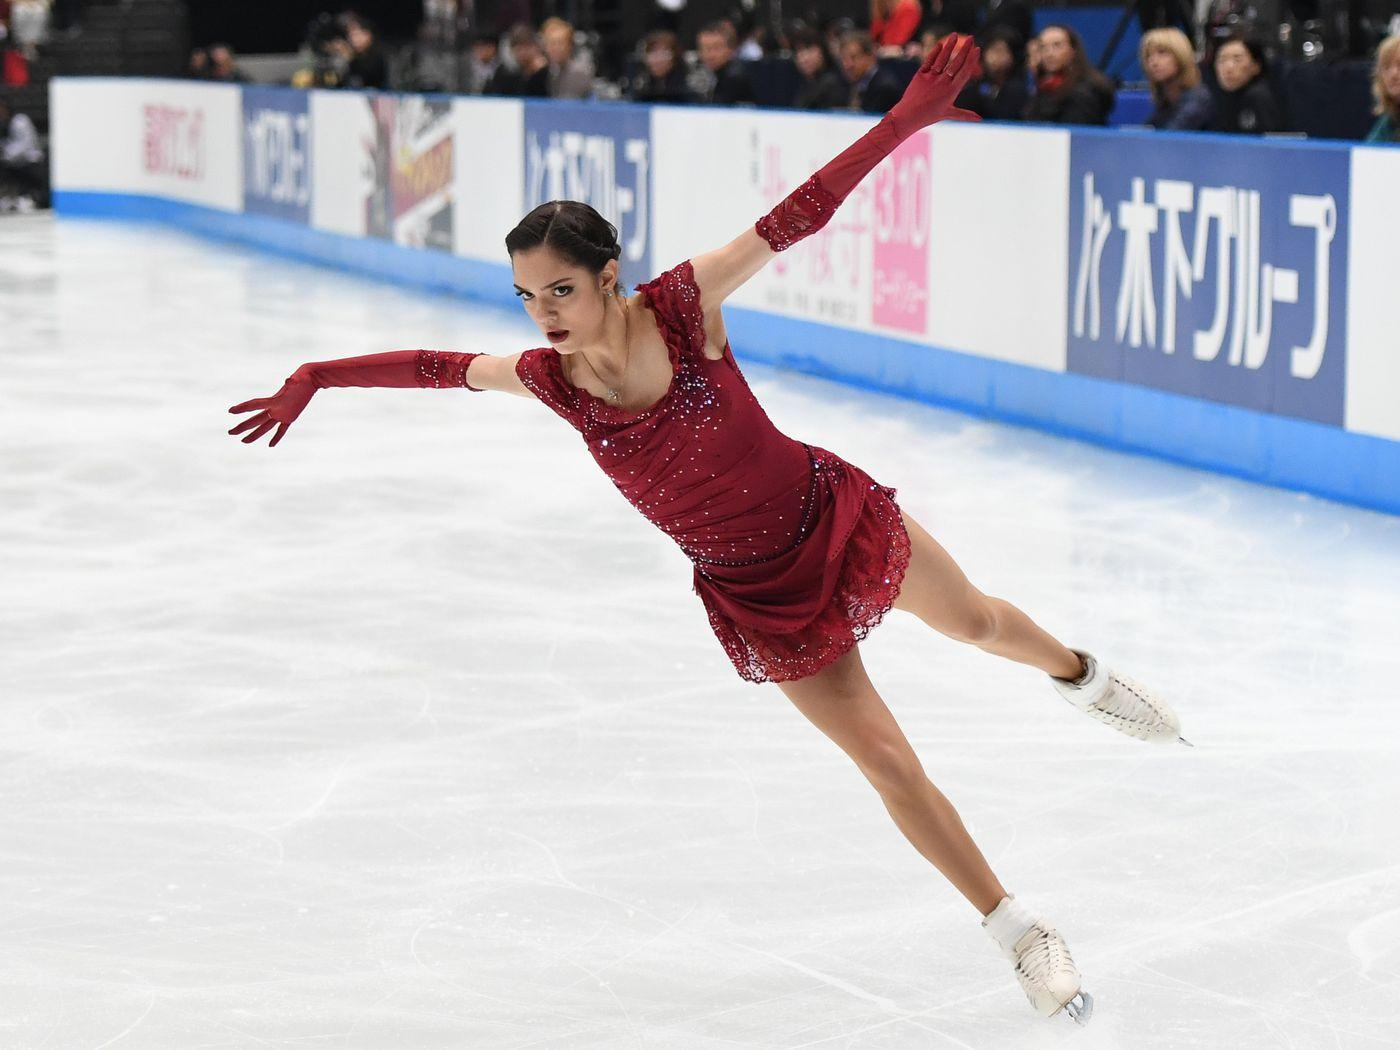 Winter Olympics figure skating: Evgenia Medvedeva is talented and